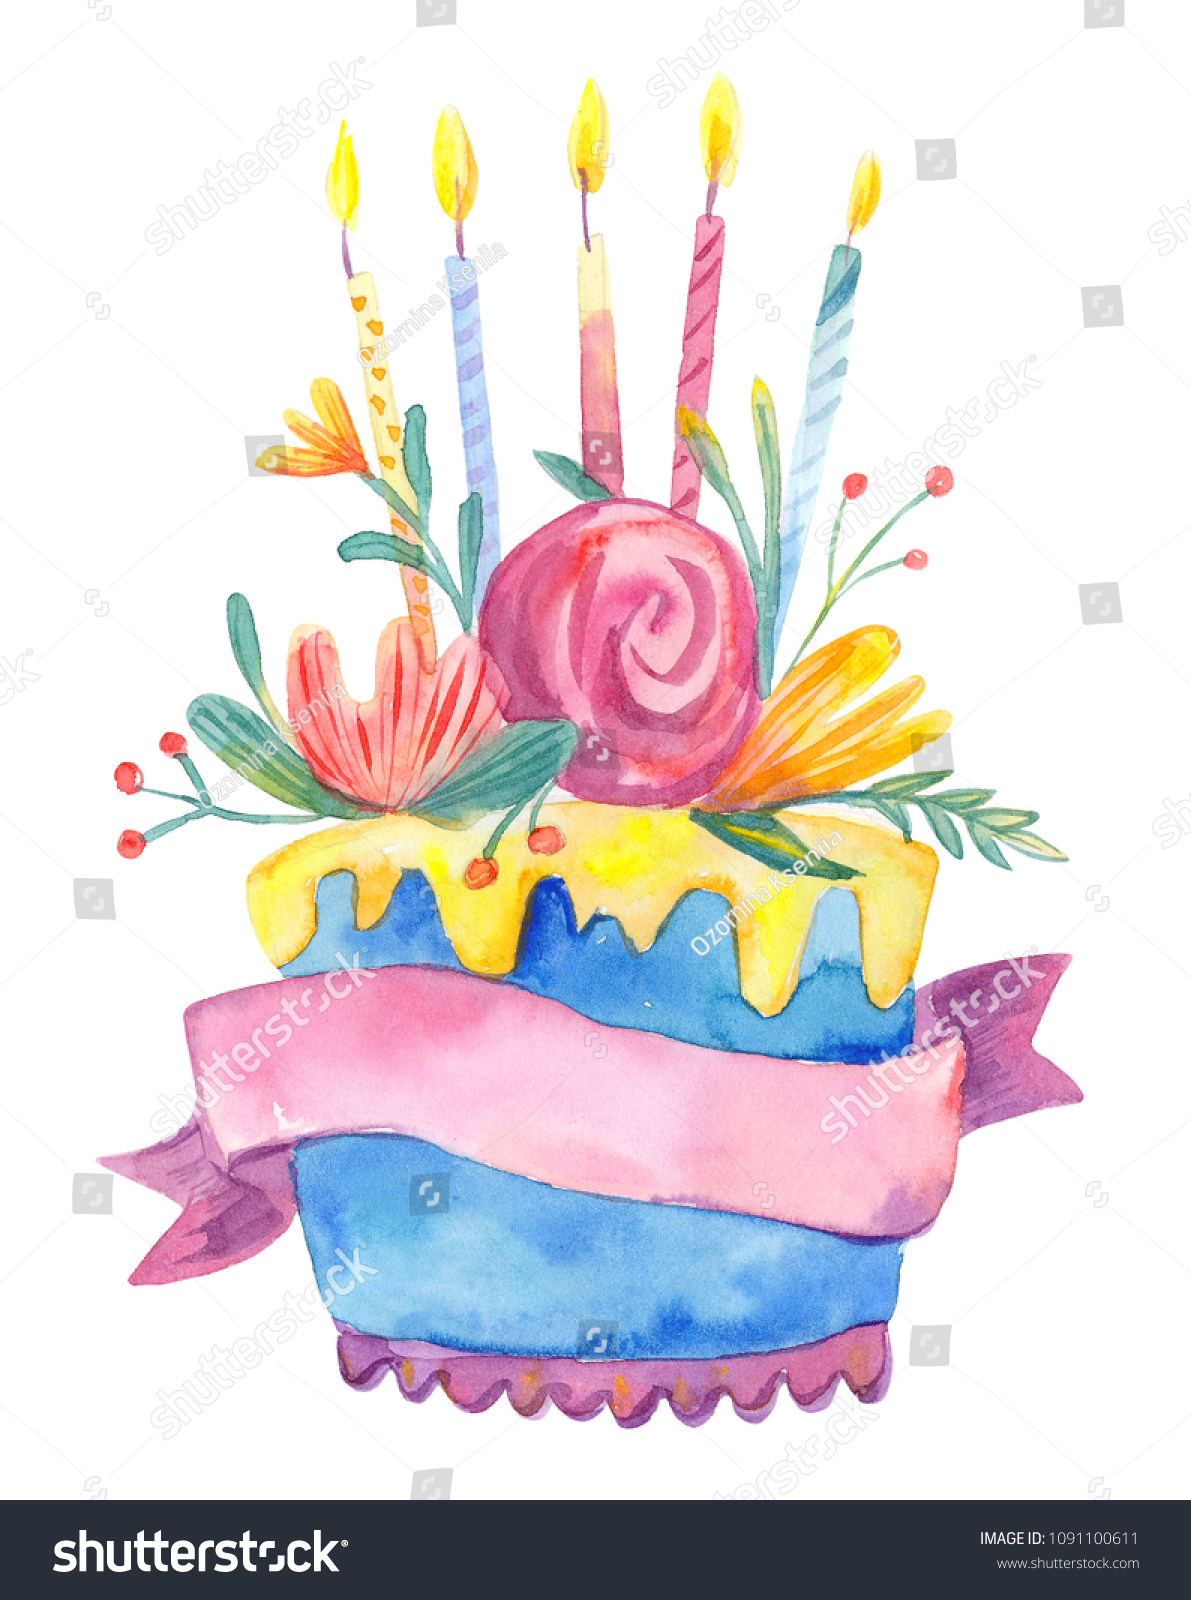 Watercolor birthday cake flowers candles isolated stock illustration watercolor birthday cake with flowers and candles isolated on white background hand drawn illustration with izmirmasajfo